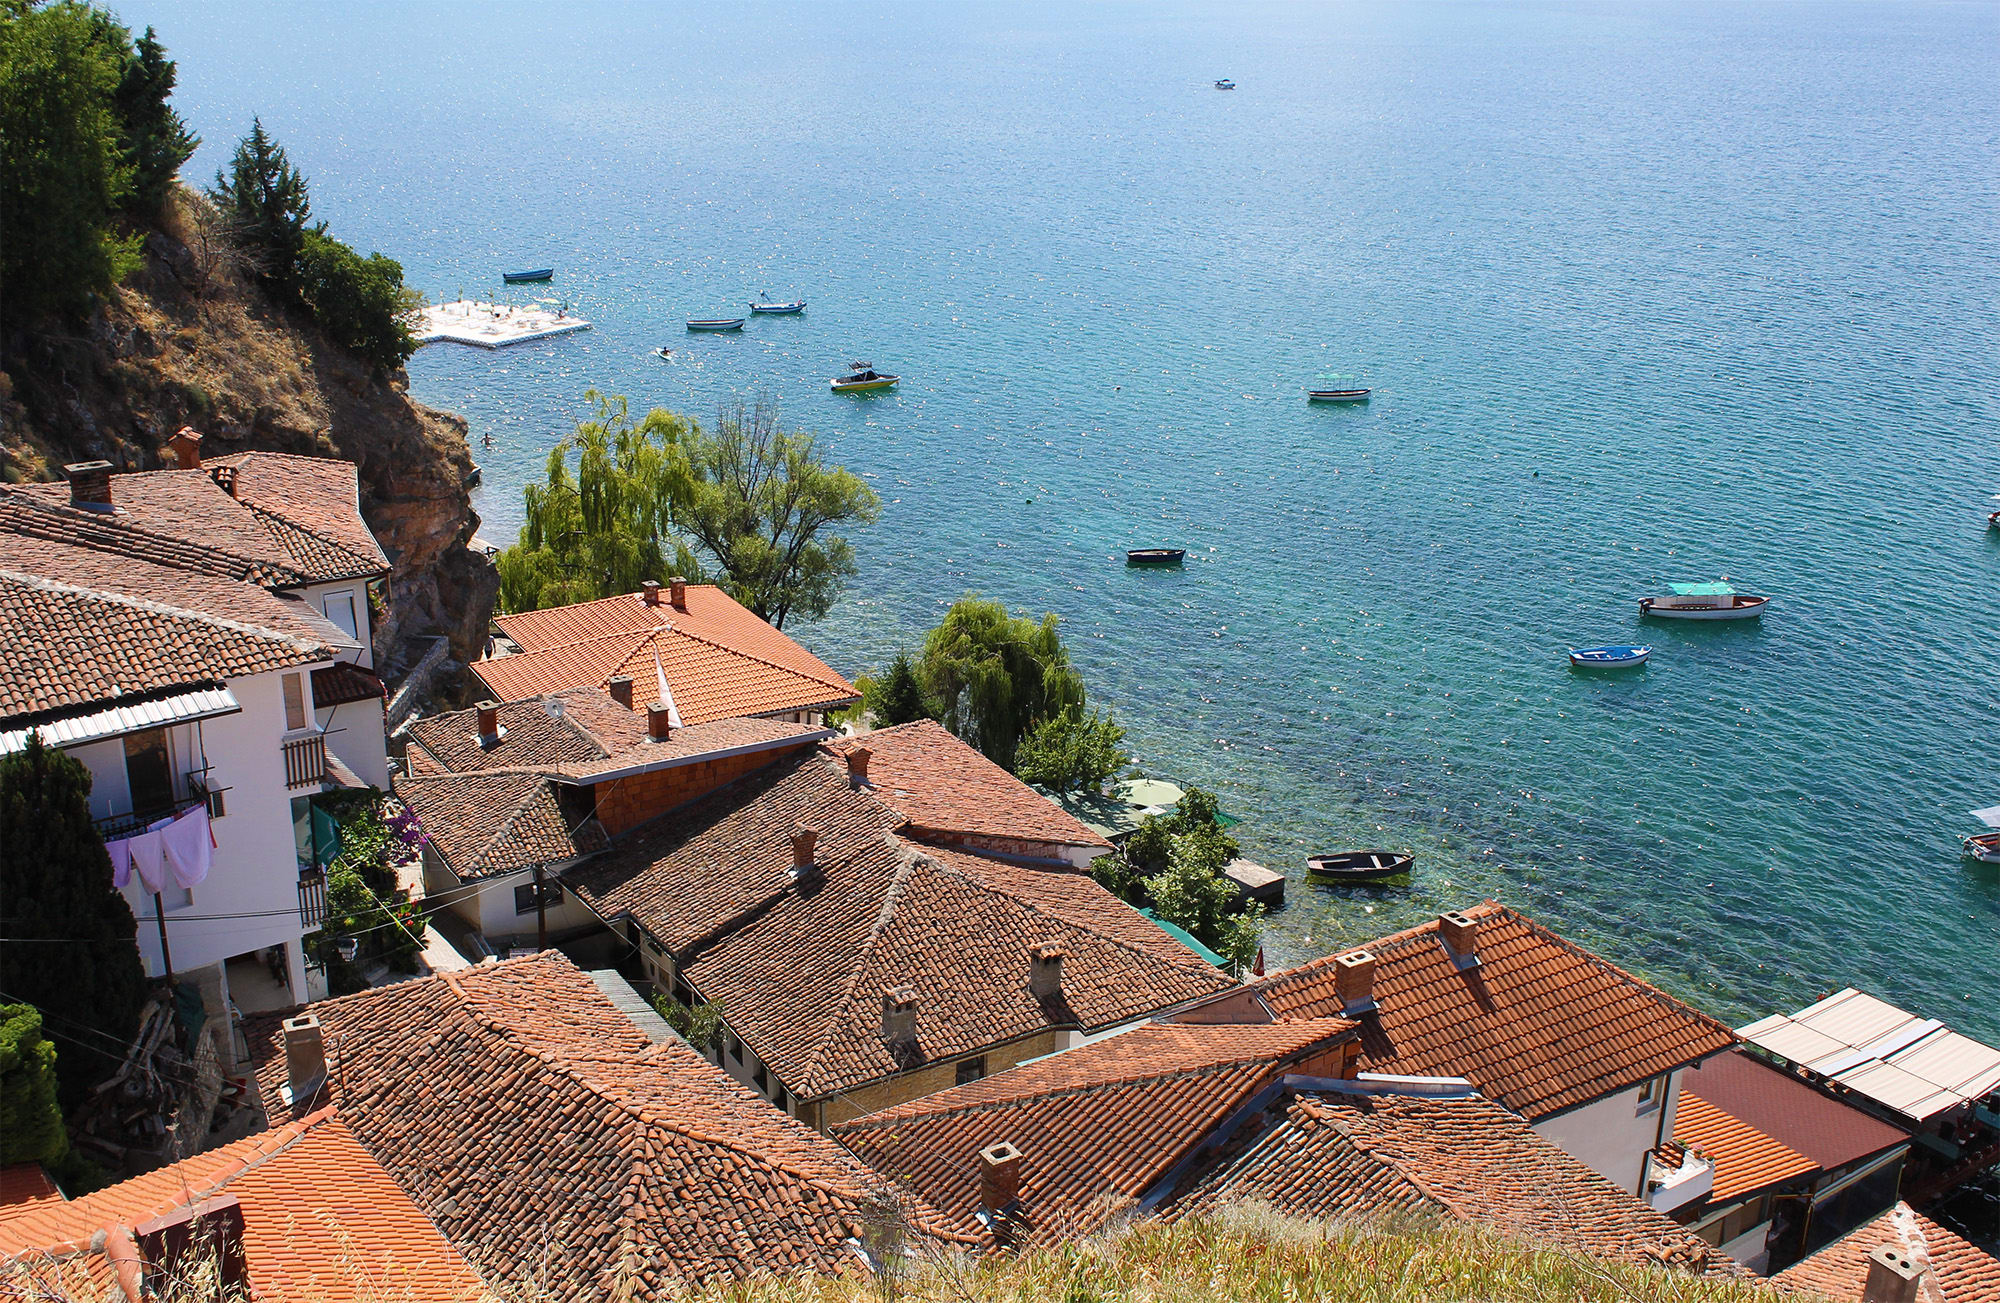 The town of Ohrid and its lake